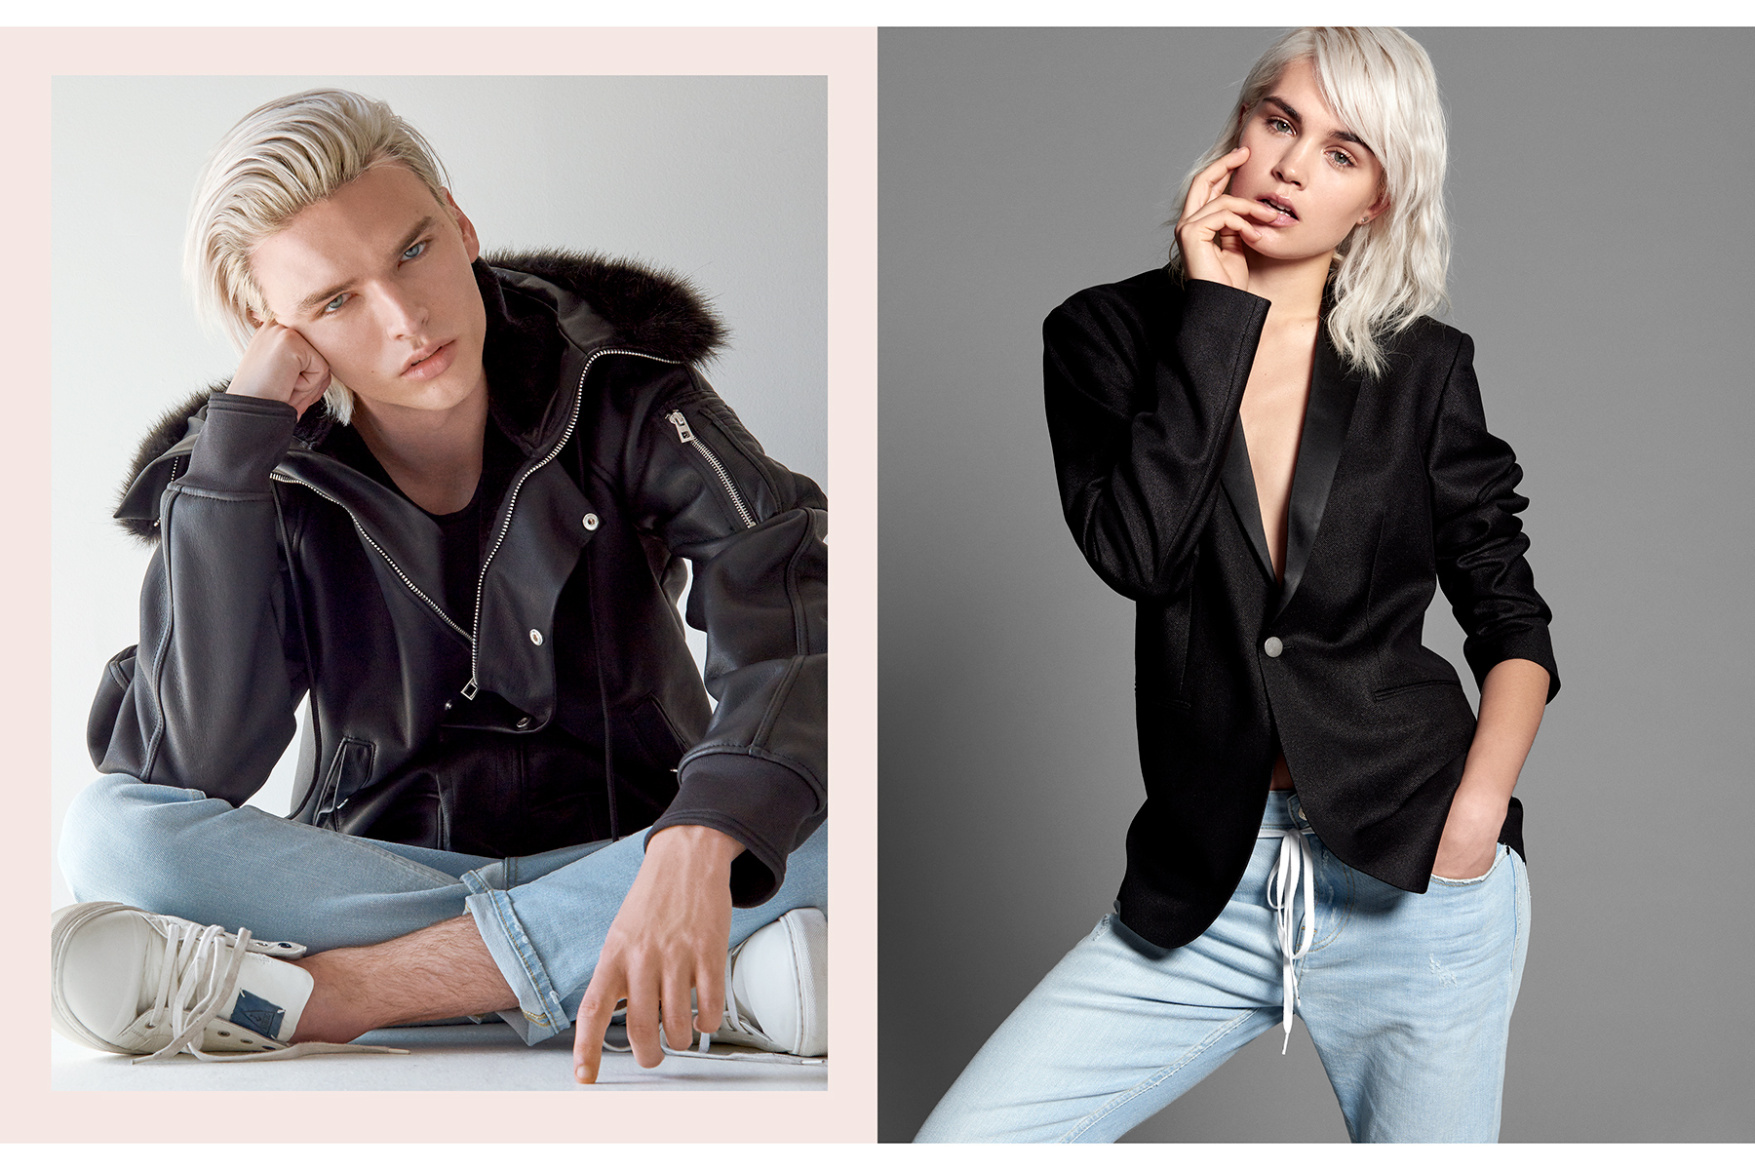 guess-unisex-collection-6